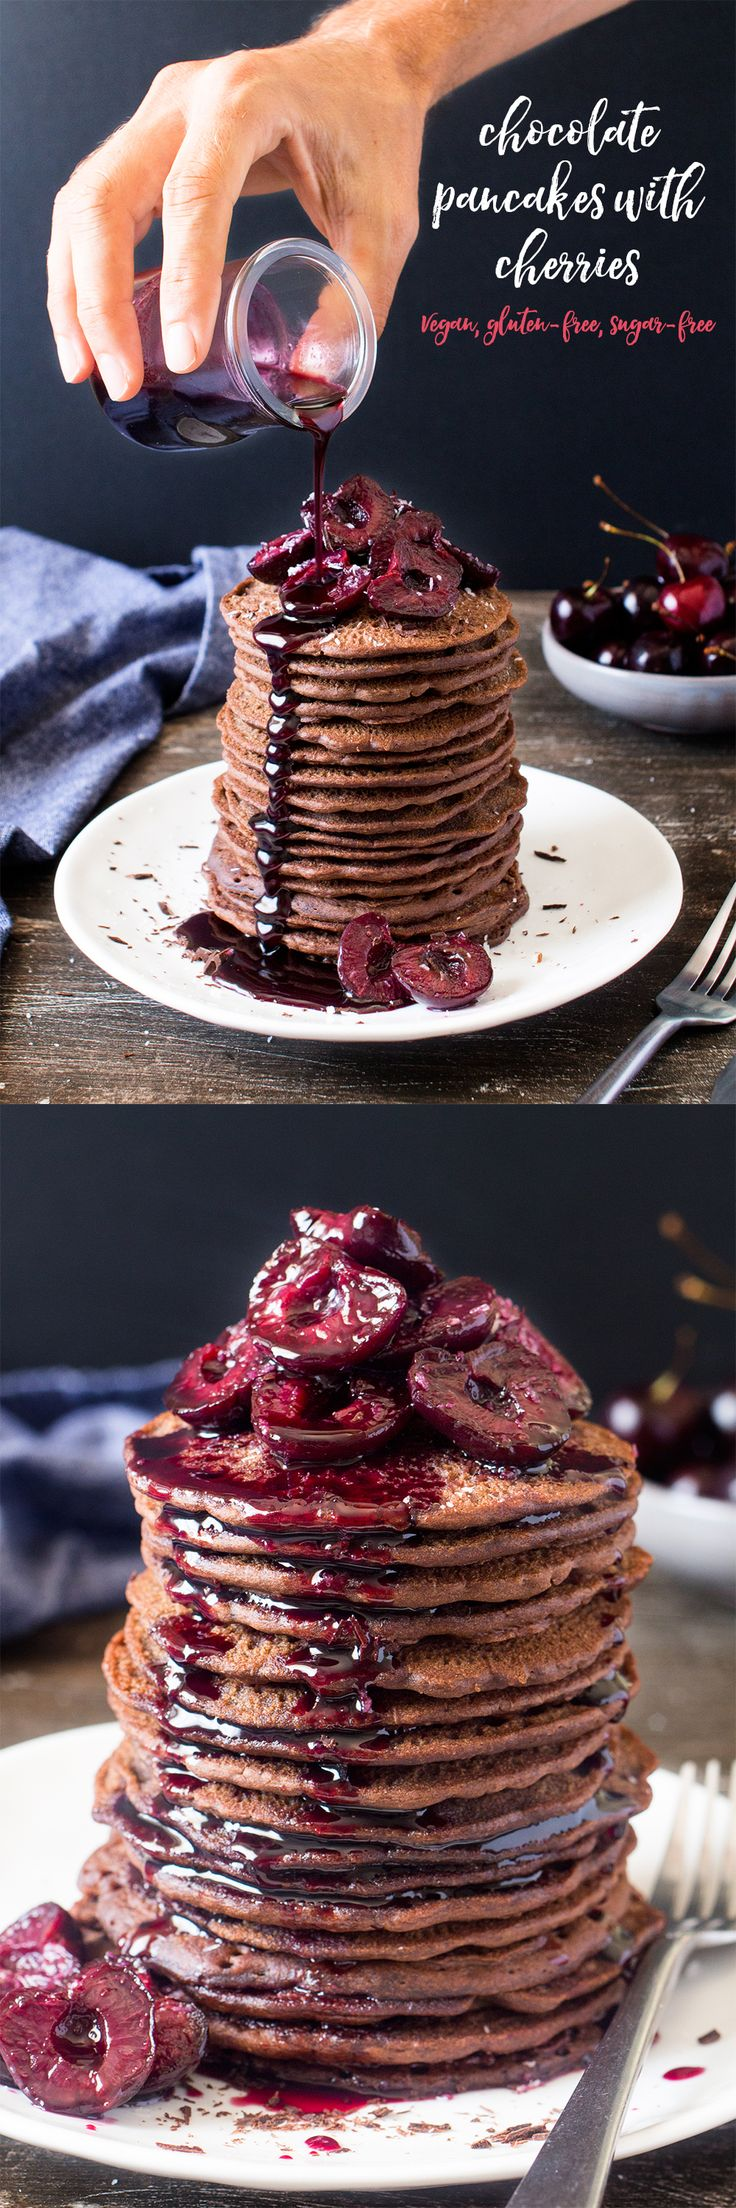 #vegan #chocolate #pancakes with #cherries are a perfect way to start the weekend! They are #easy to make, delicious, naturally #glutenfree and refined #sugarfree too!     #recipe #recipes #breakfast #dessert #vegetarian #aquafaba